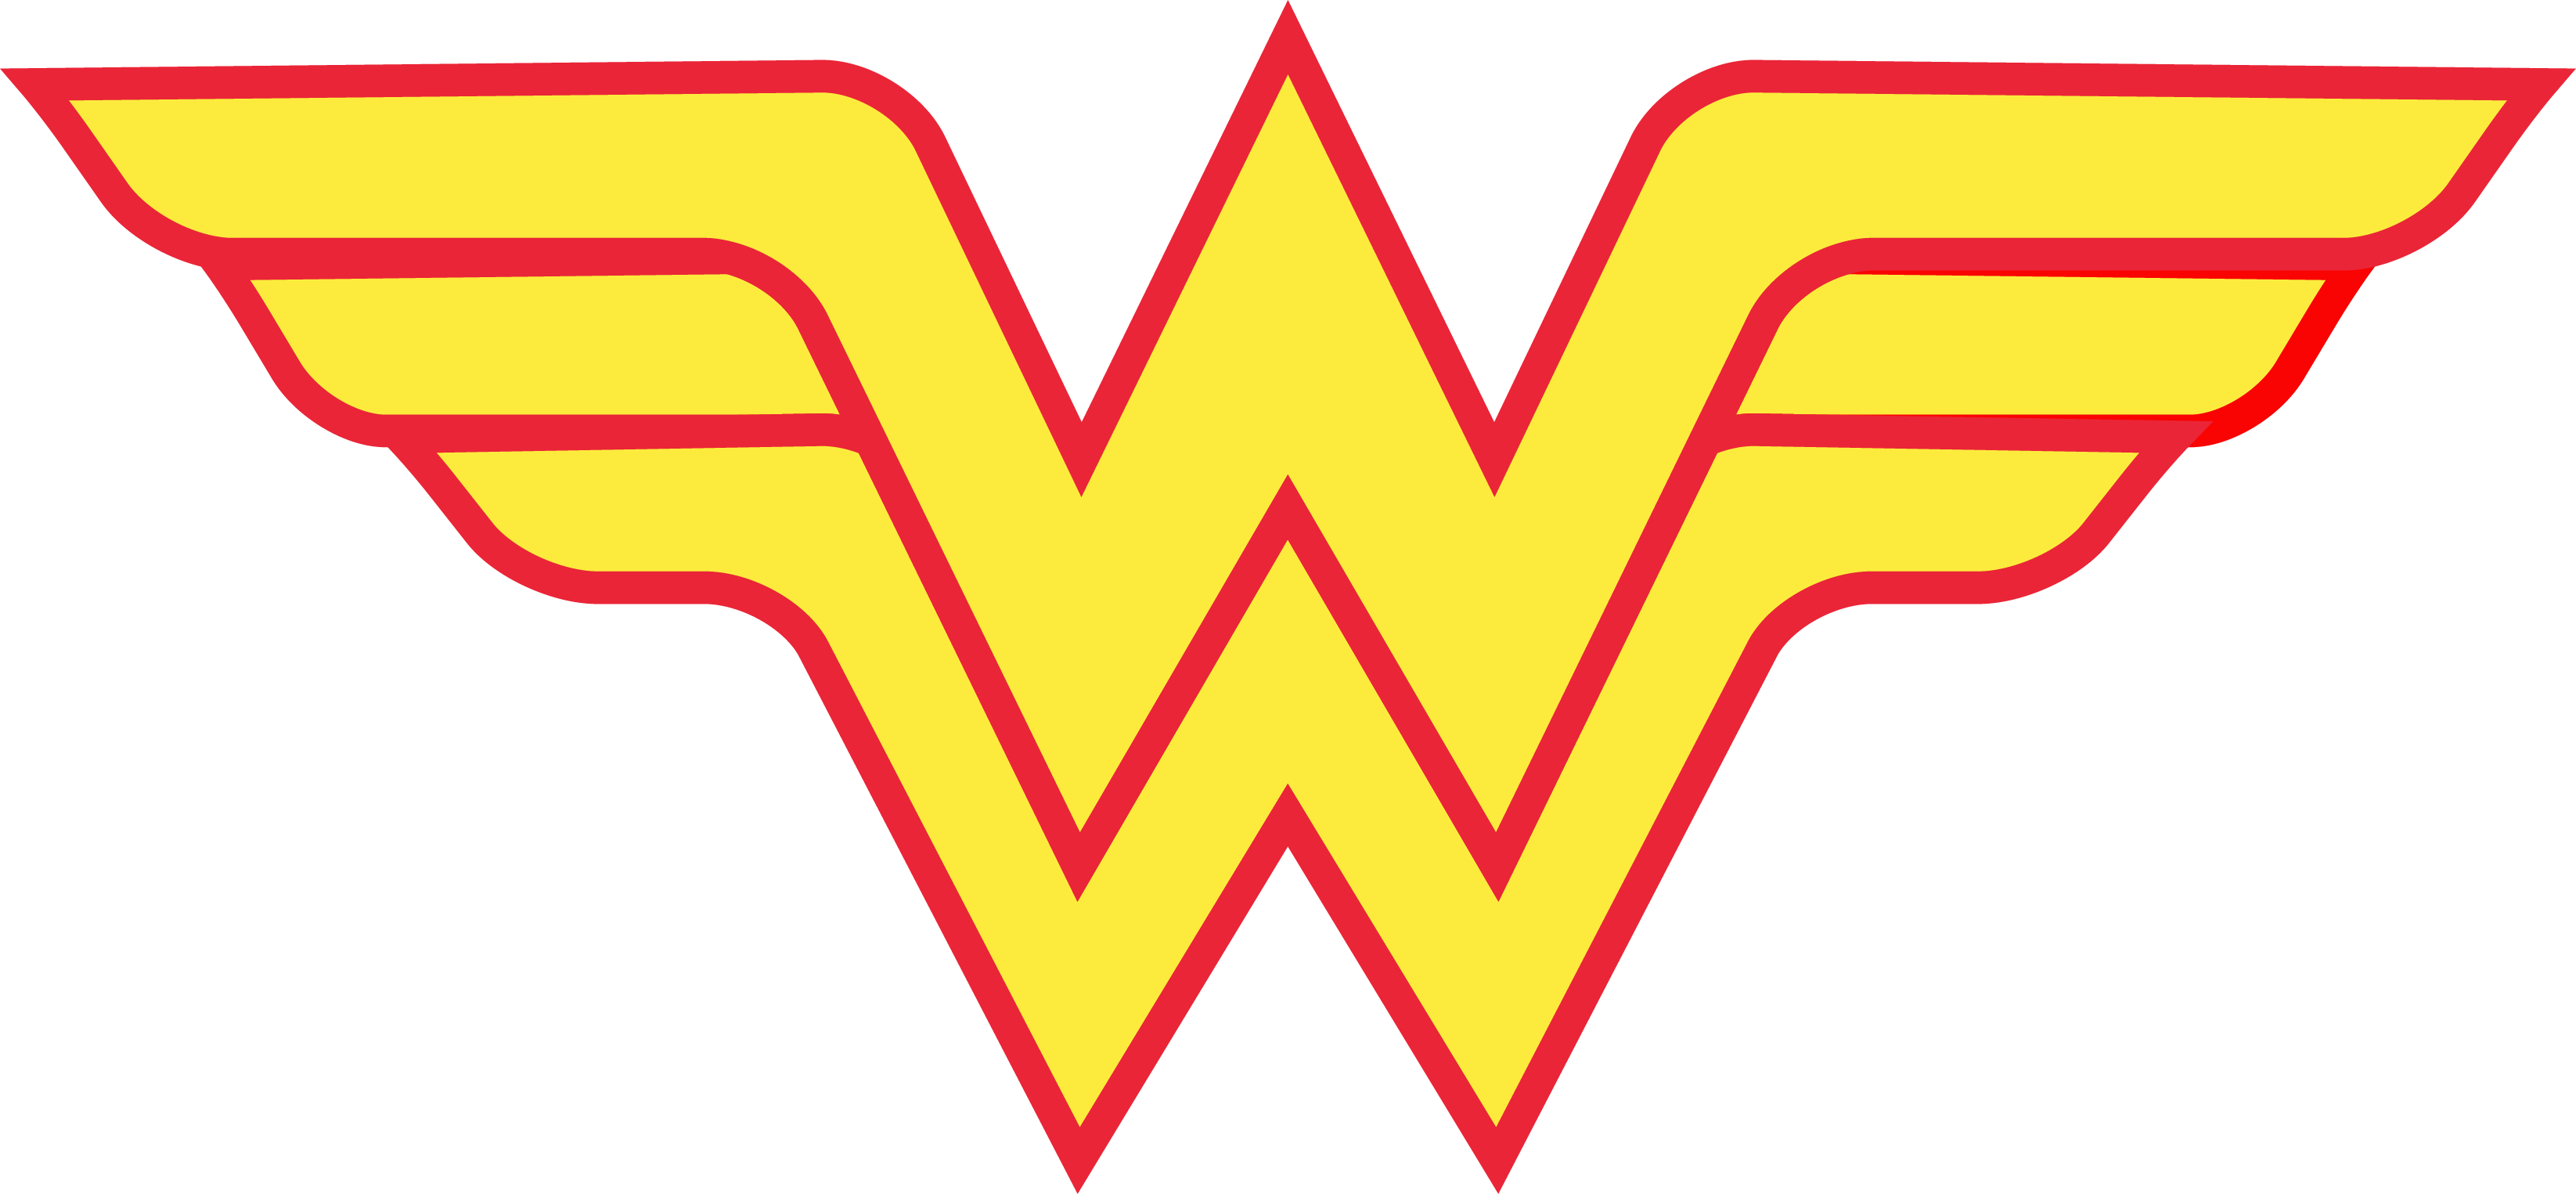 wonder woman logo vector eps free download logo icons clipart rh freelogovectors net wonder woman logo vector download wonder woman logo vector png